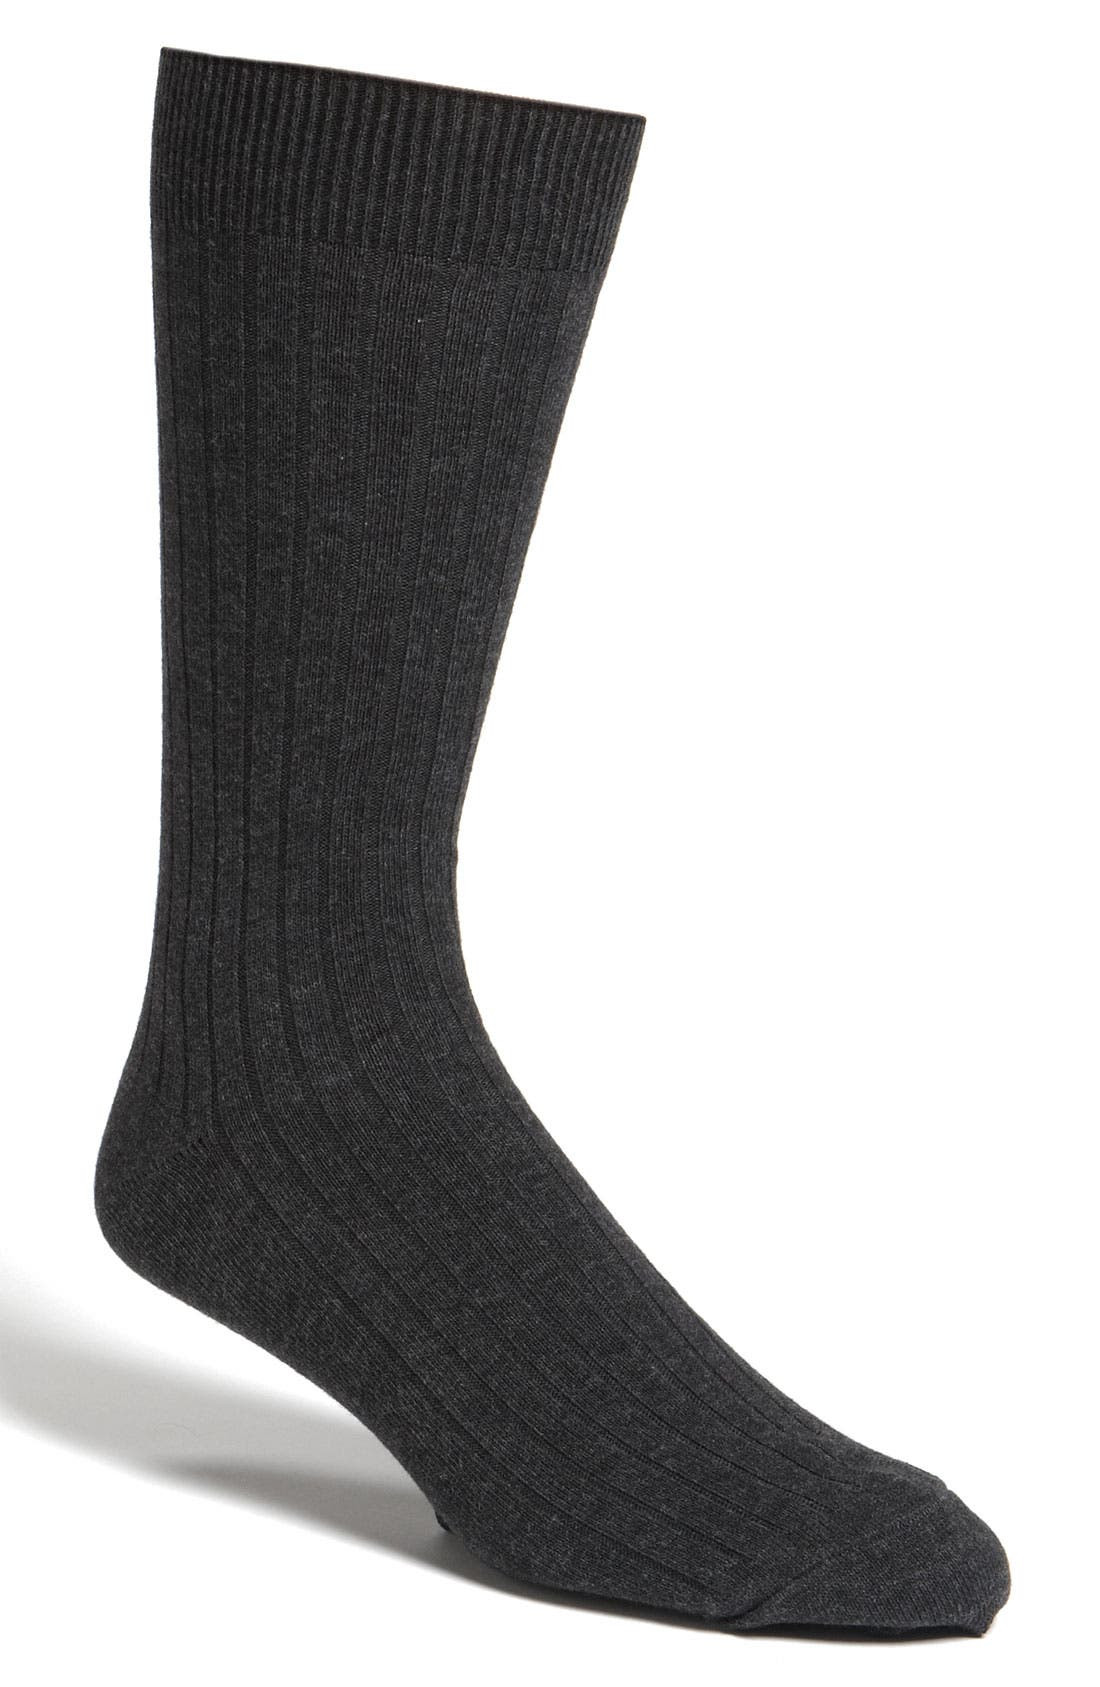 Alternate Image 1 Selected - Nordstrom Mens Shop Cotton Blend Socks (Men)